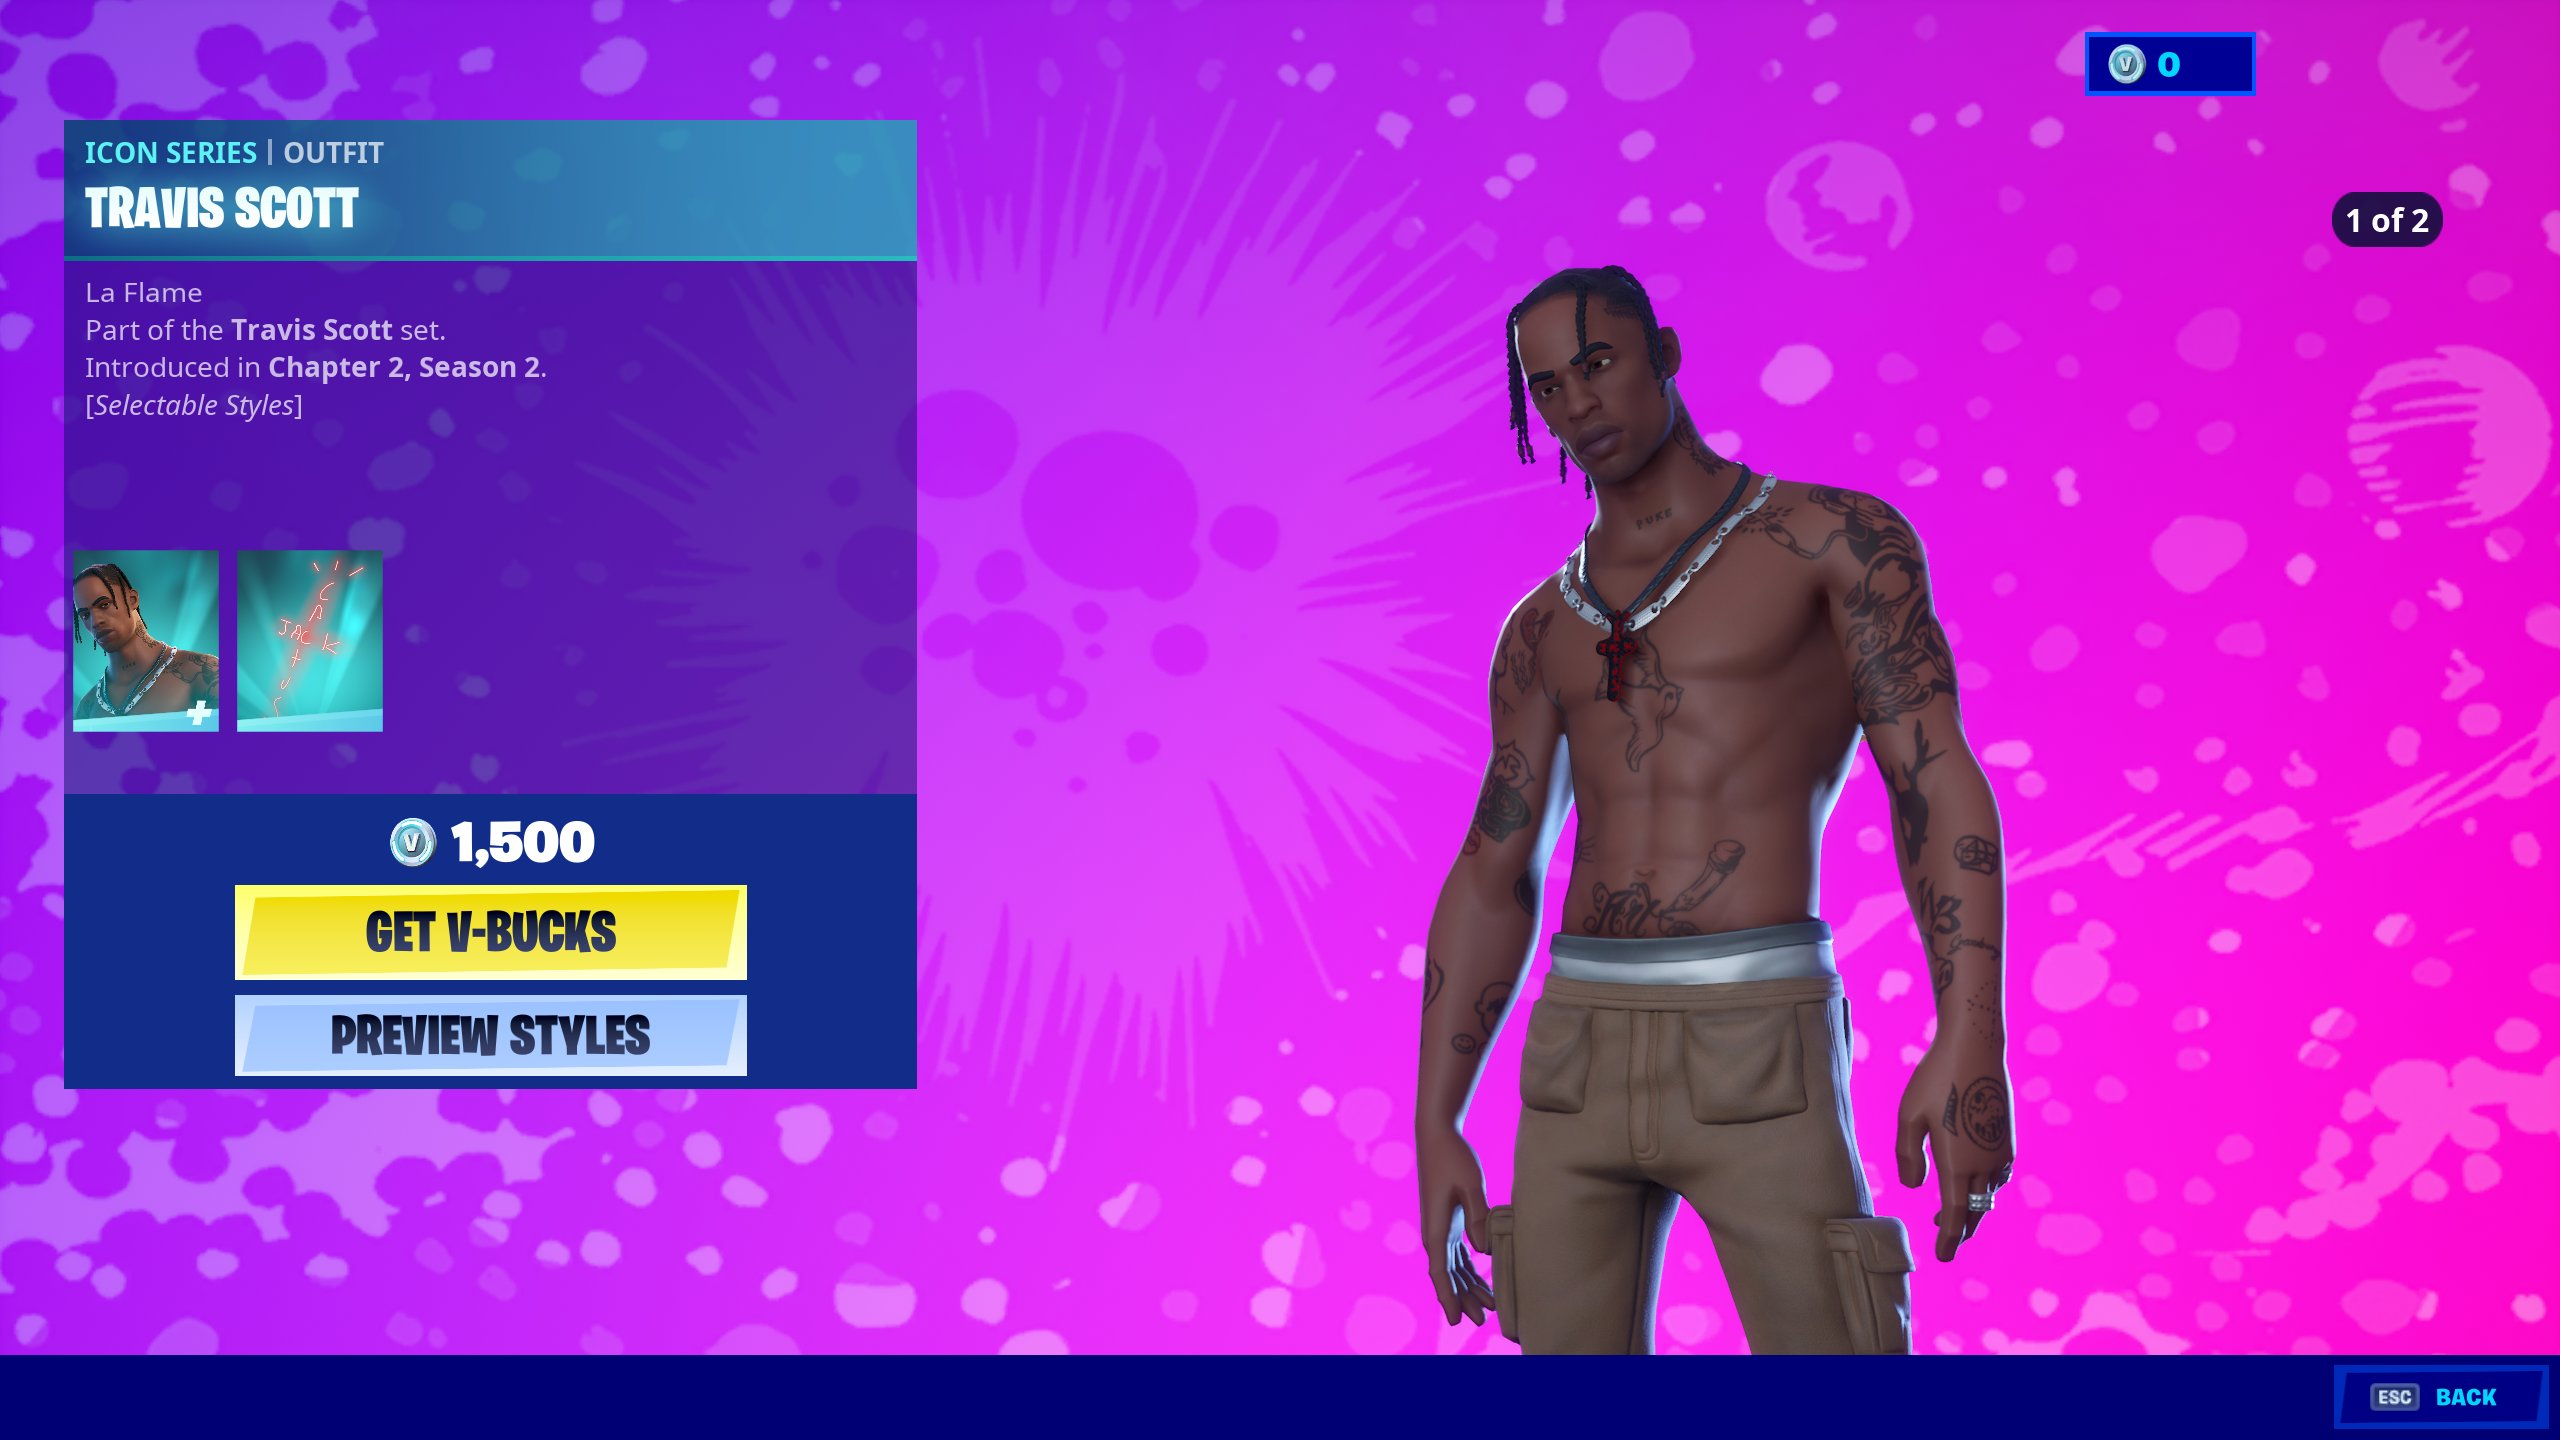 Fortnite S Latest In Game Concert Is A Great Experience Even If You Don T Like Travis Scott Полный концерт travis scott в «fortnite». fortnite s latest in game concert is a